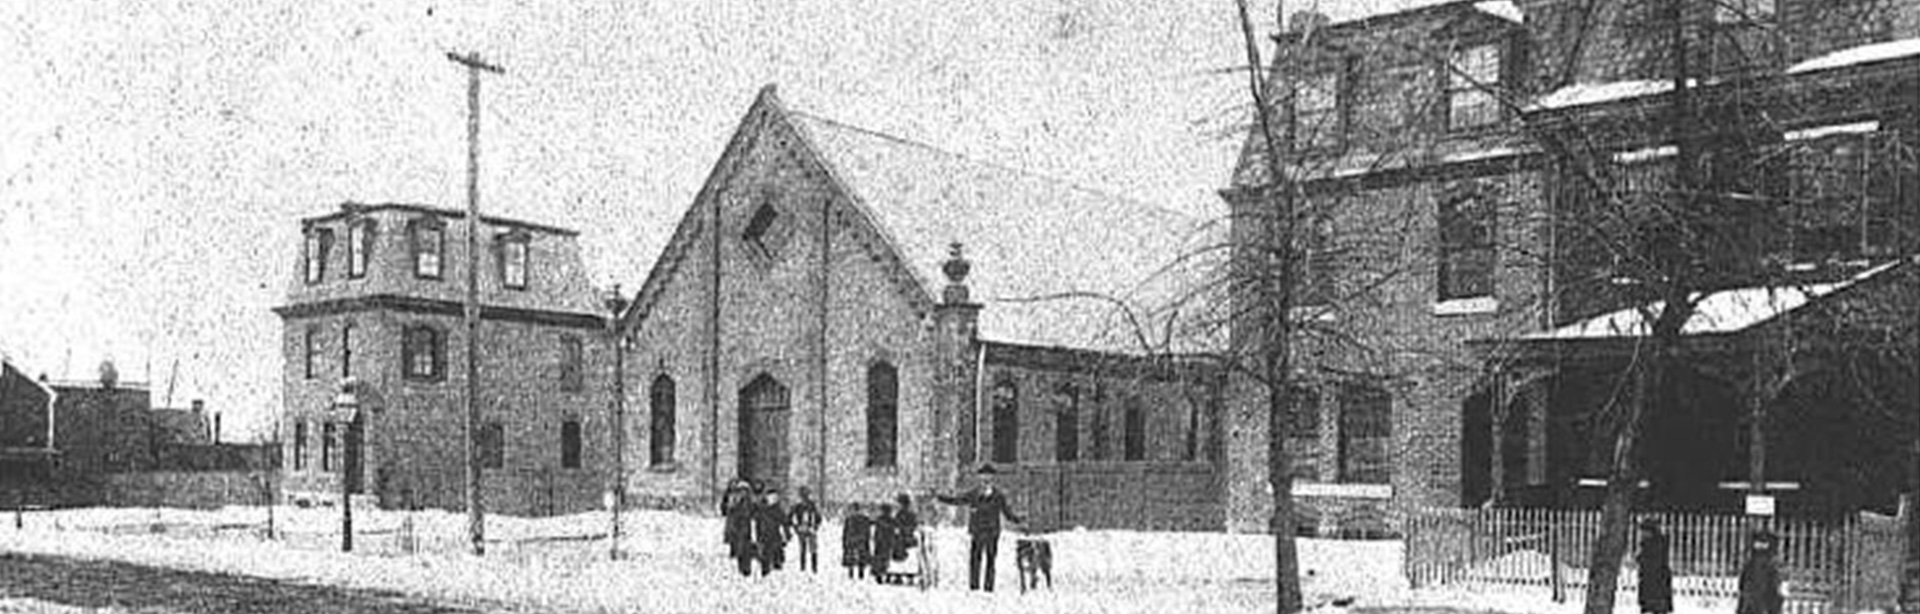 Original_St_Josephs_Church_School